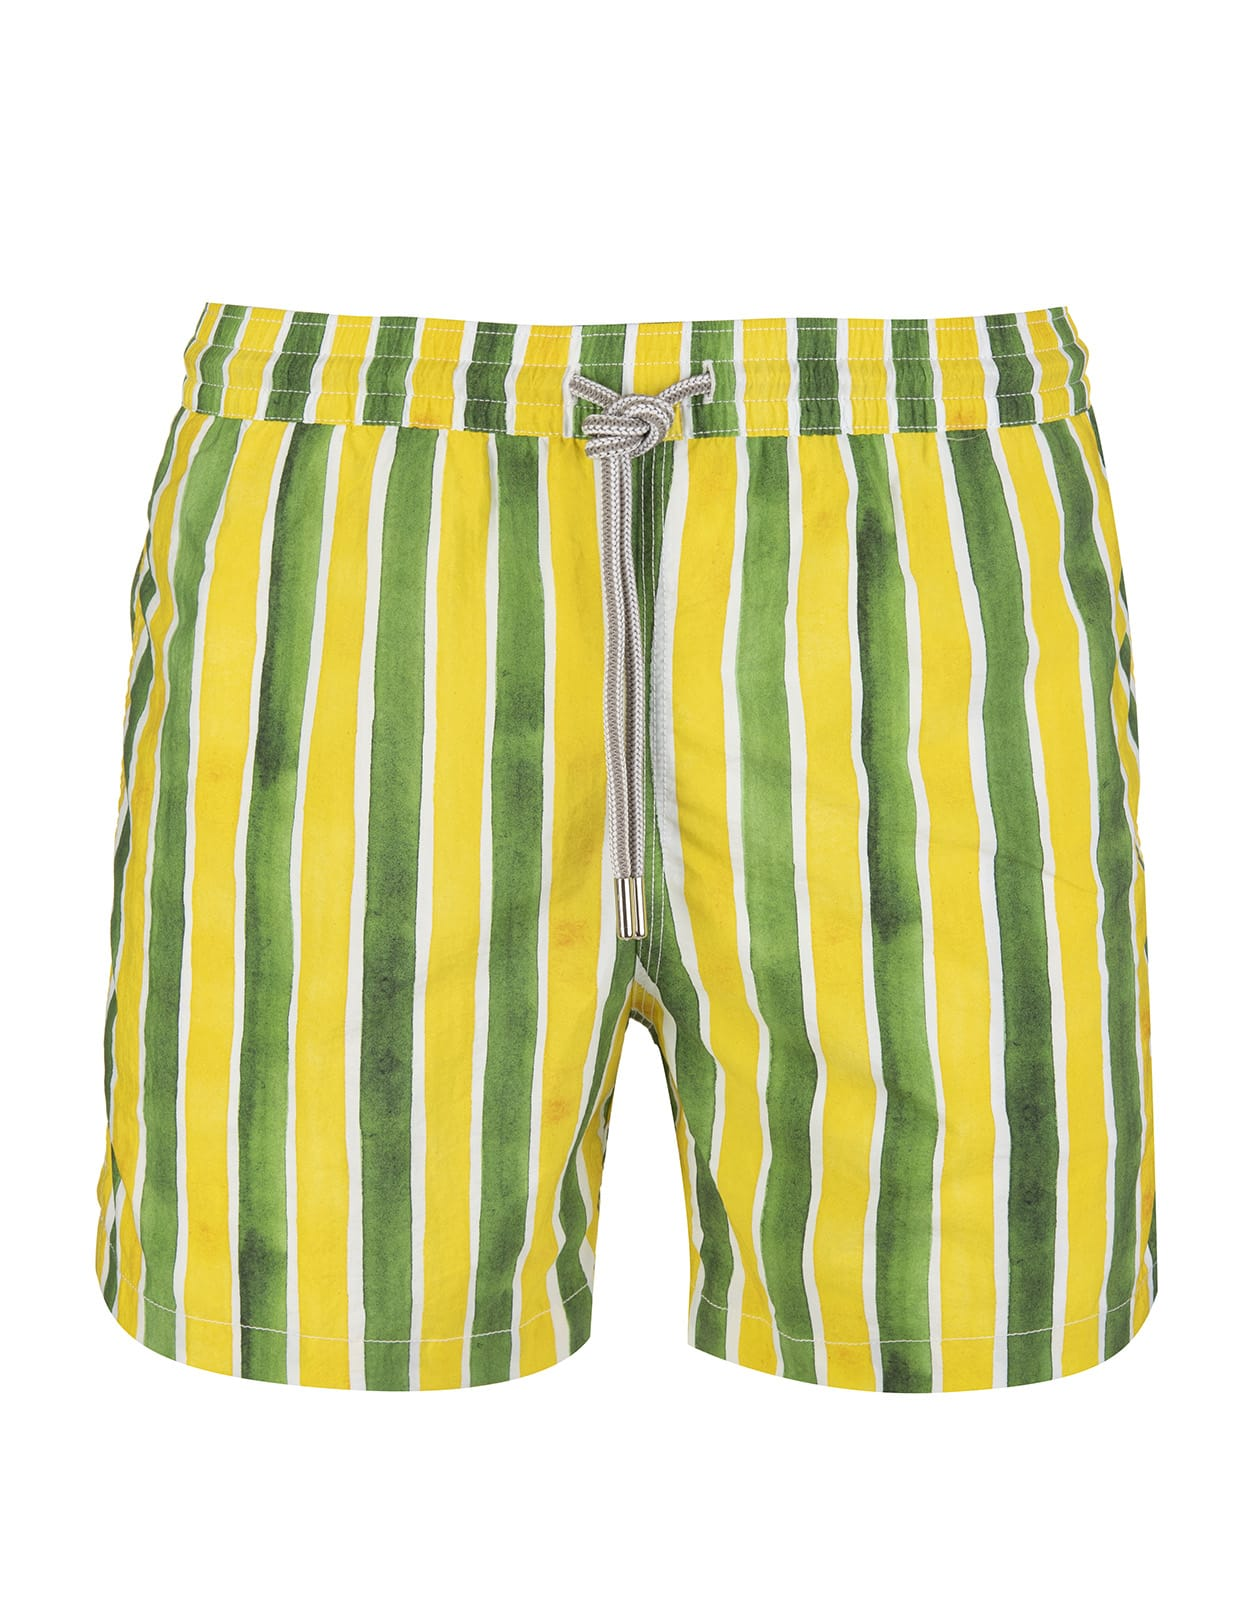 Green And Yellow Striped Swimsuit